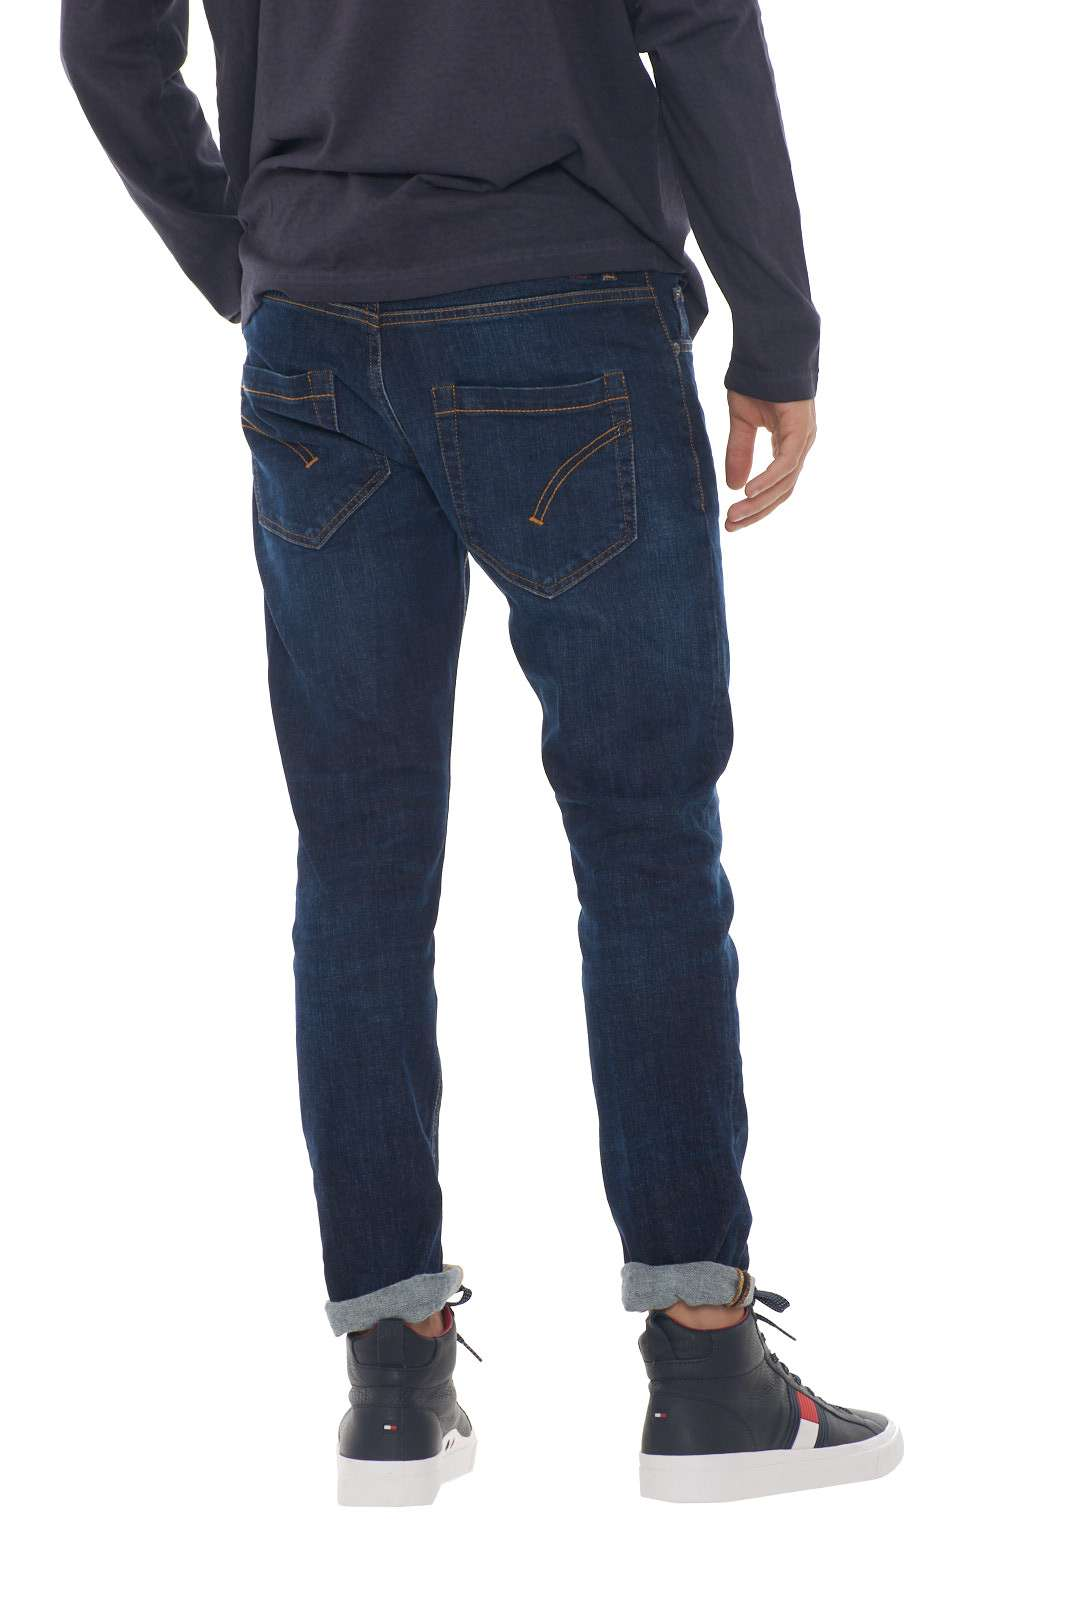 https://www.parmax.com/media/catalog/product/a/i/AI-outlet_parmax-denim-uomo-Dondup-UP168DS0257U-C.jpg